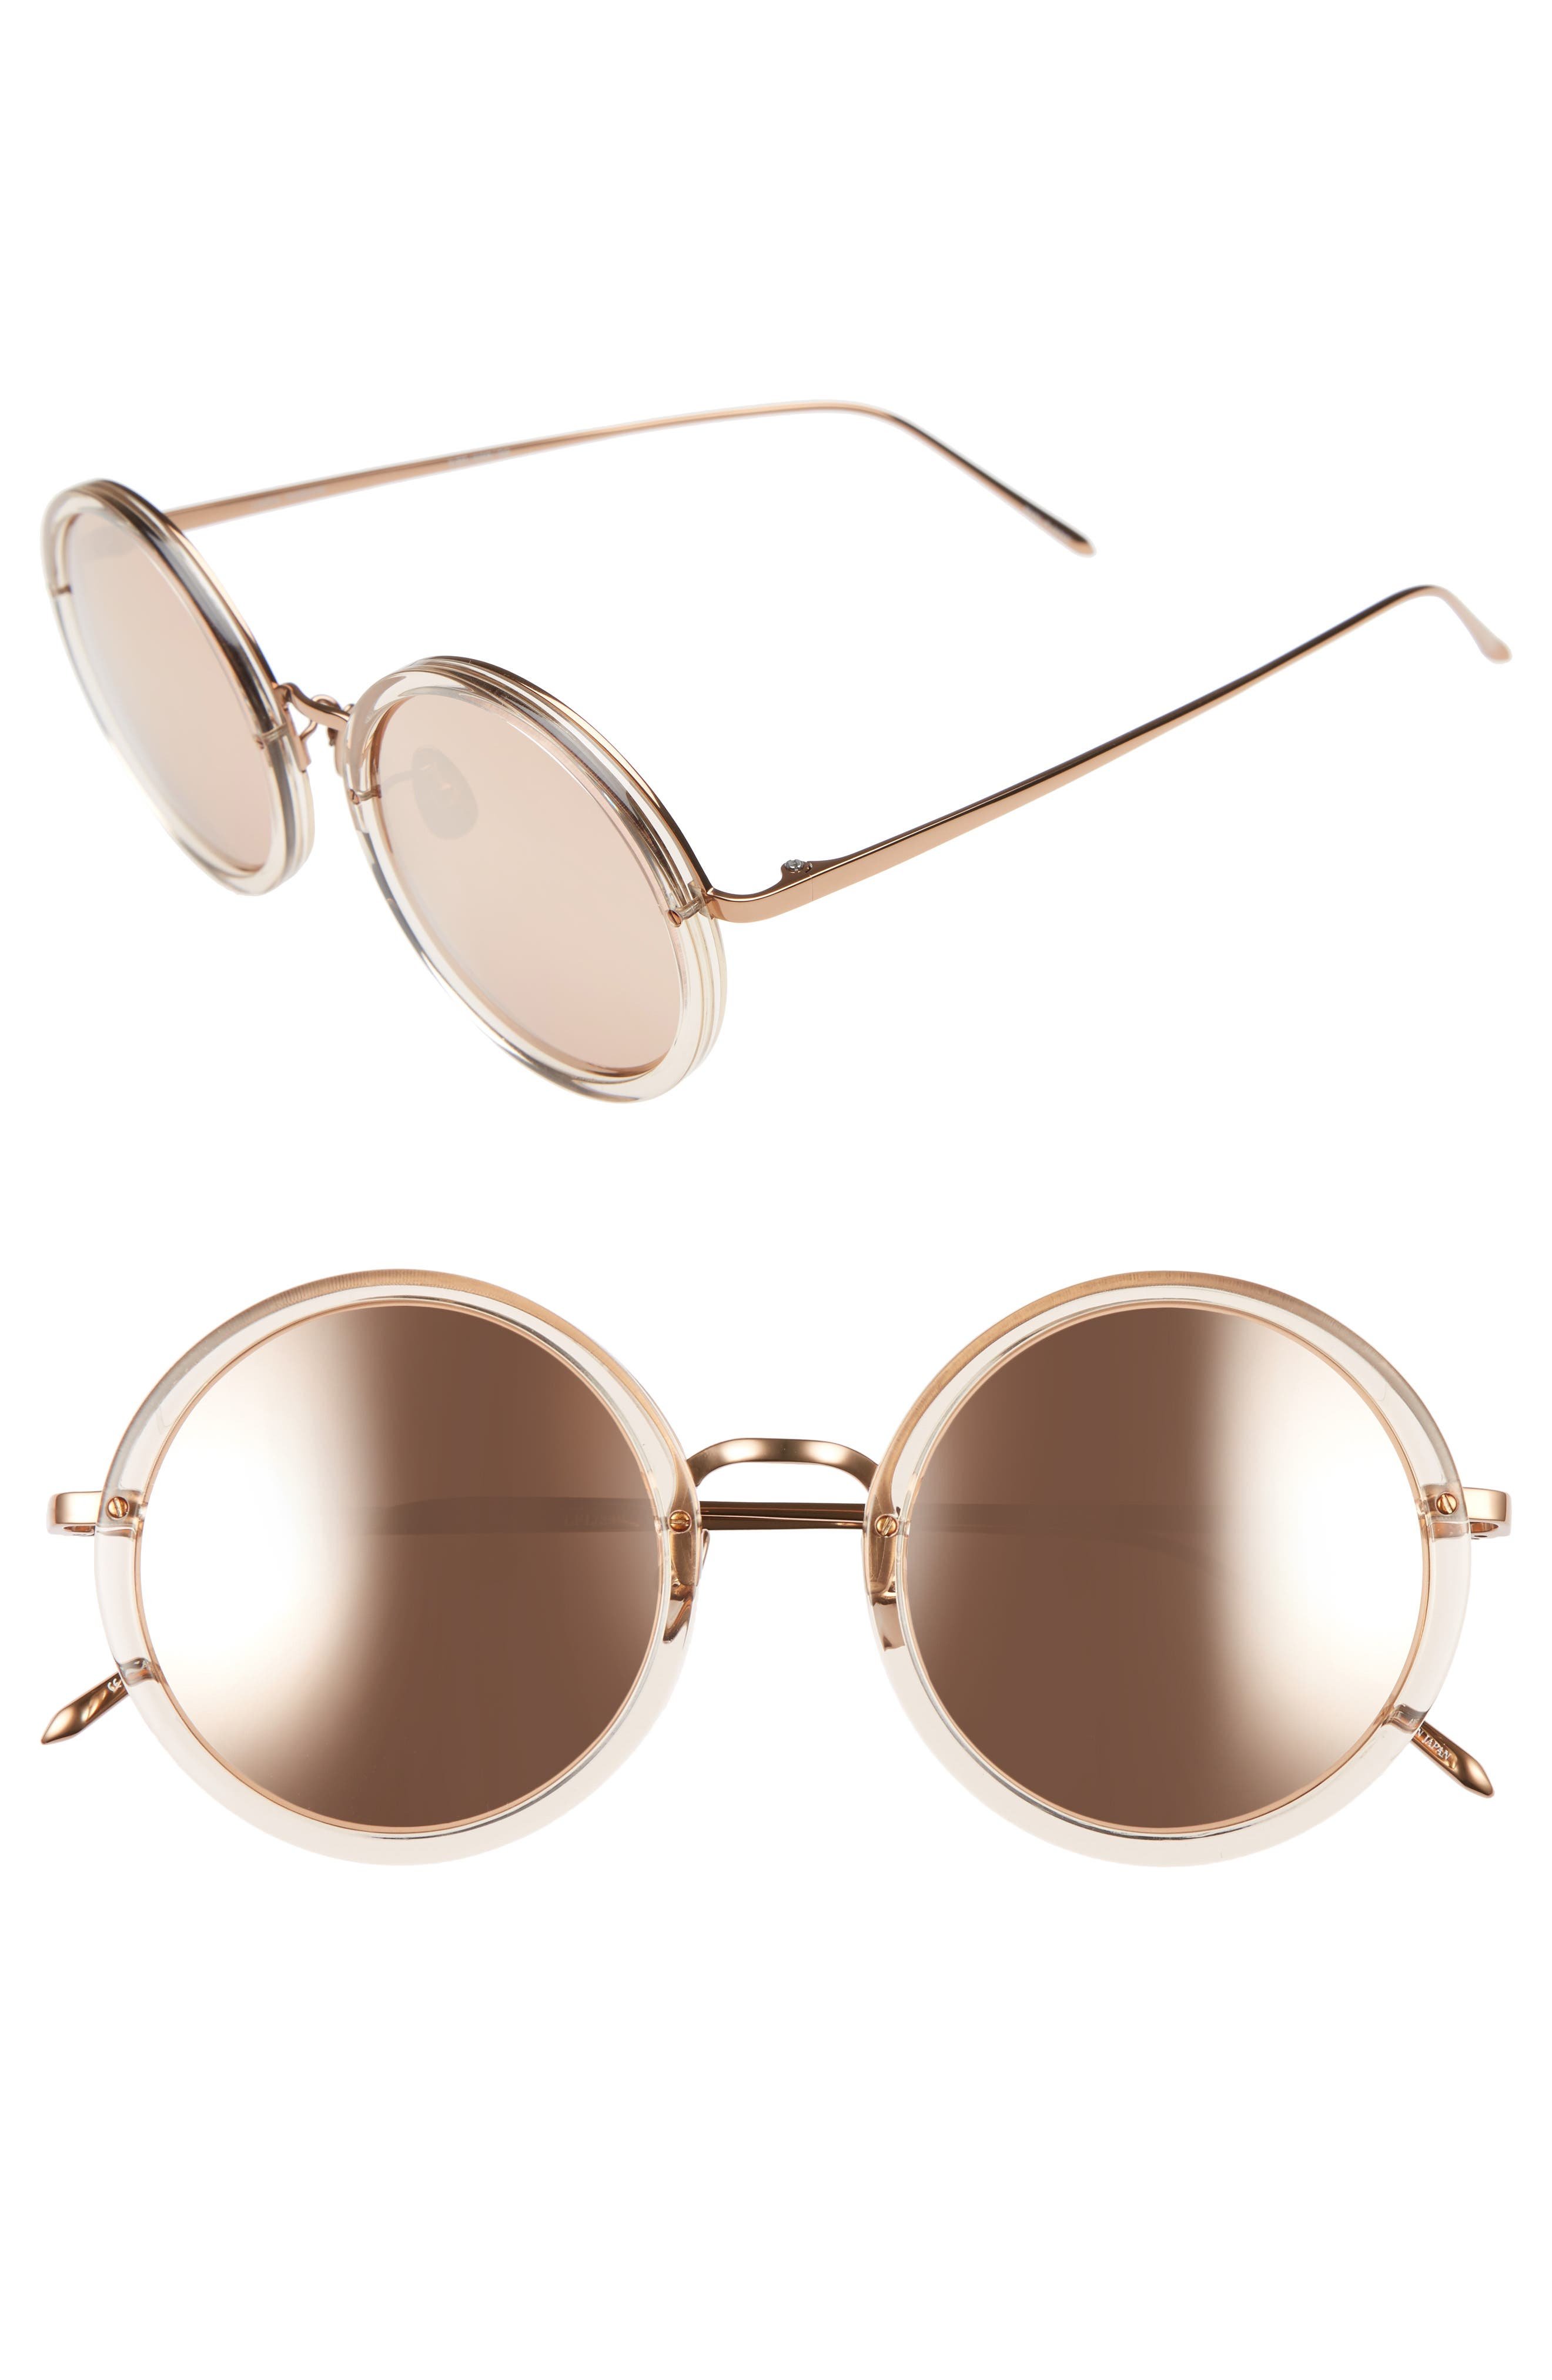 51mm Round Sunglasses,                         Main,                         color, Ash/ Rose Gold